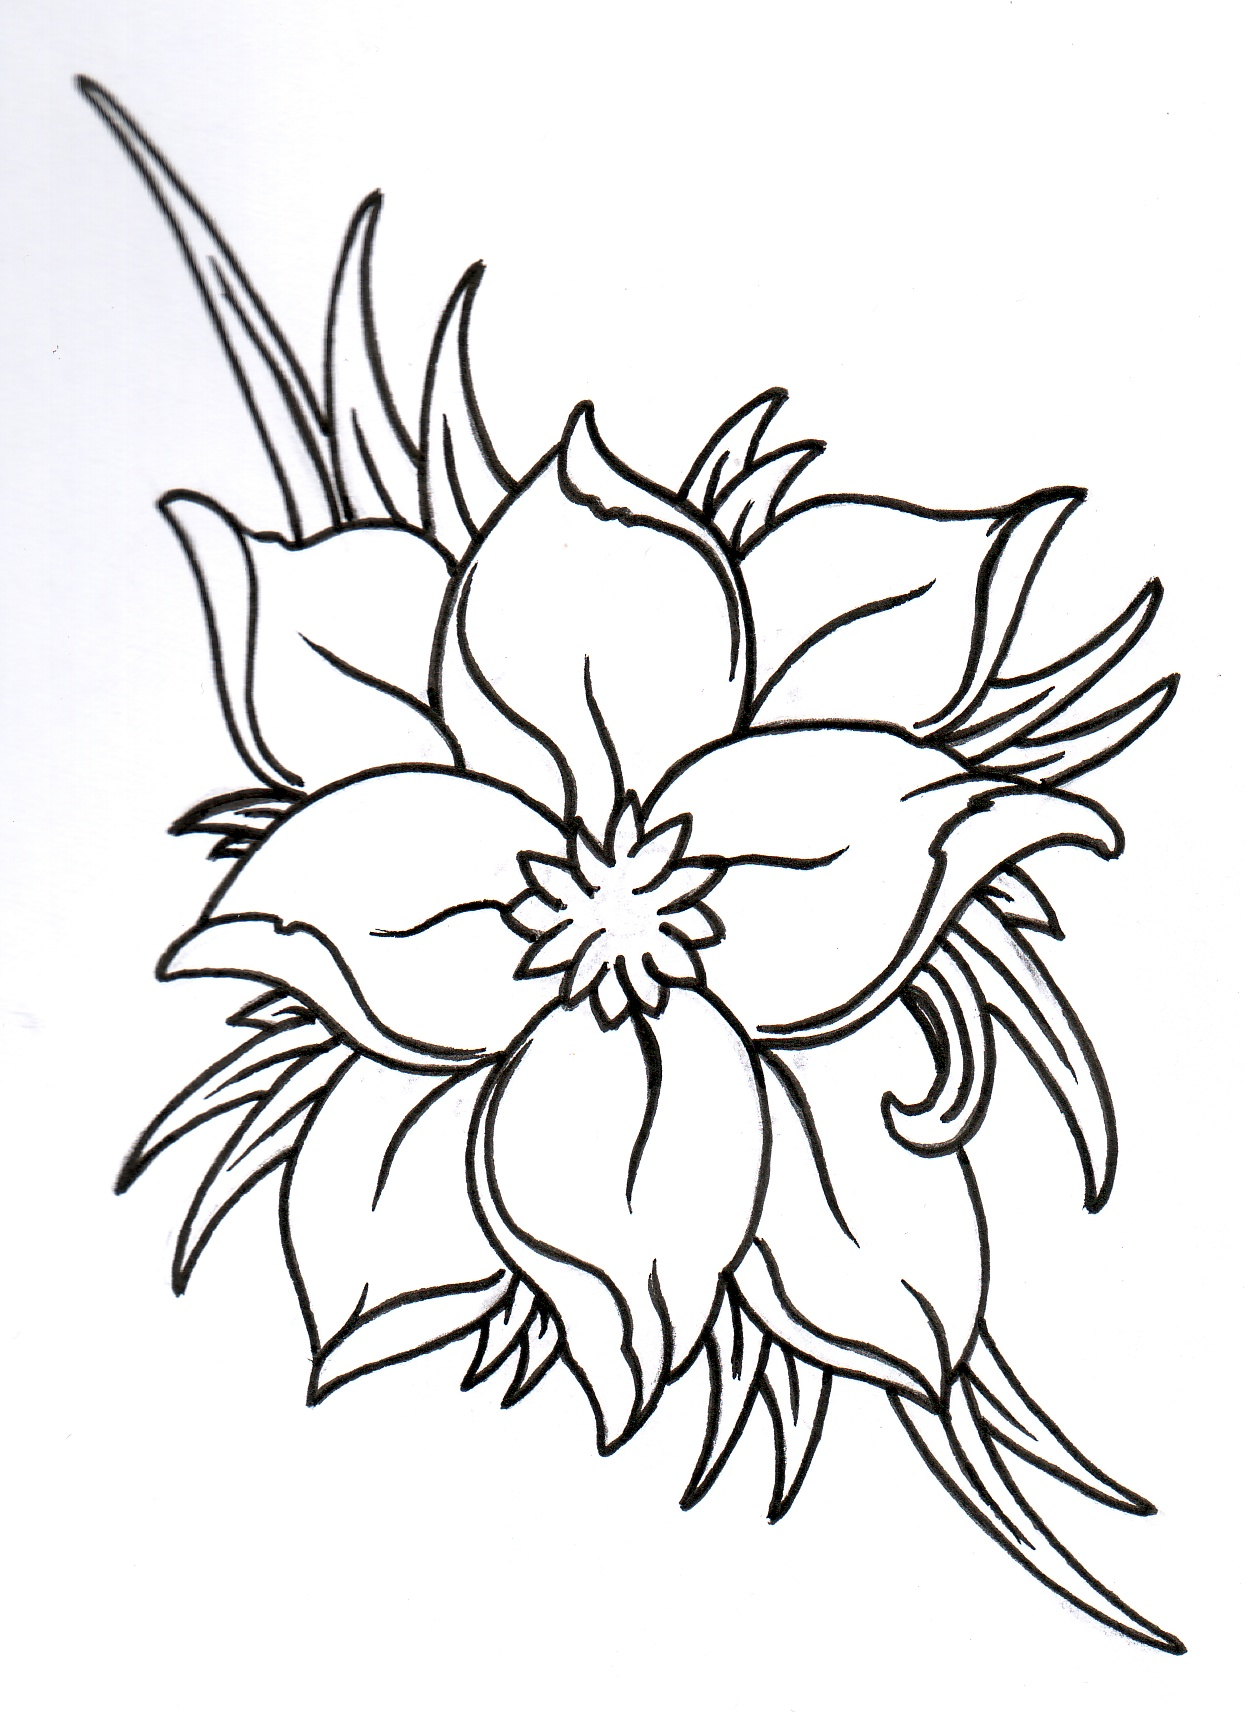 Flower Outline Designs - ClipArt Best